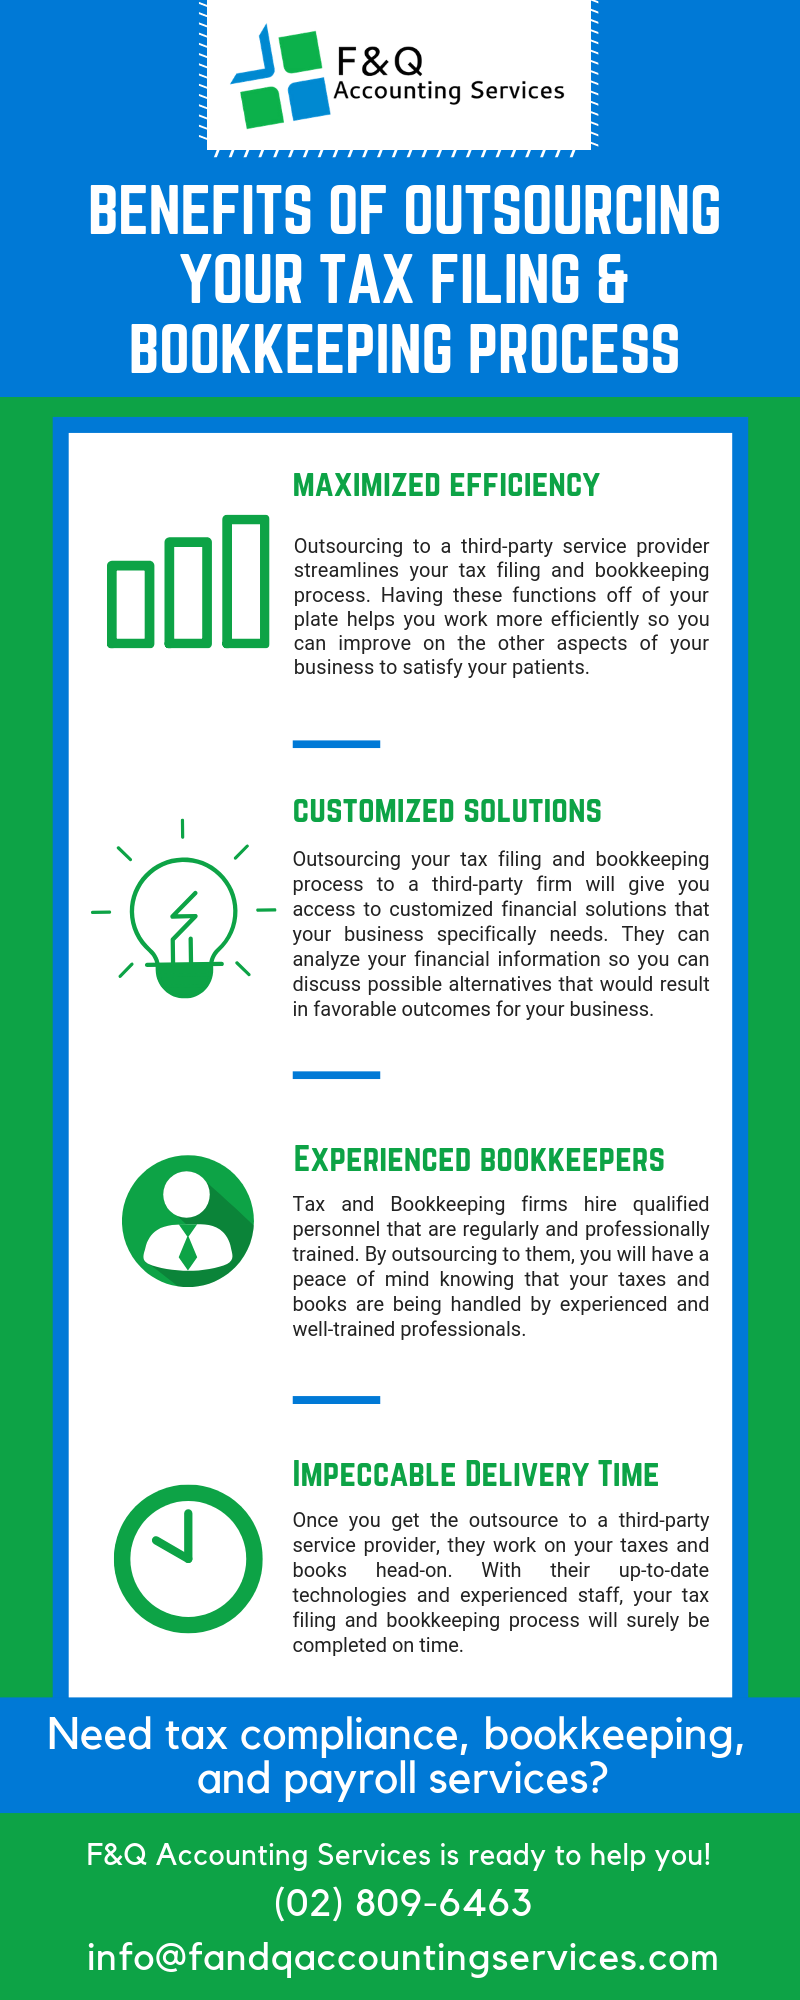 Benefits of Outsourcing Your Tax Filing & Bookkeeping Process